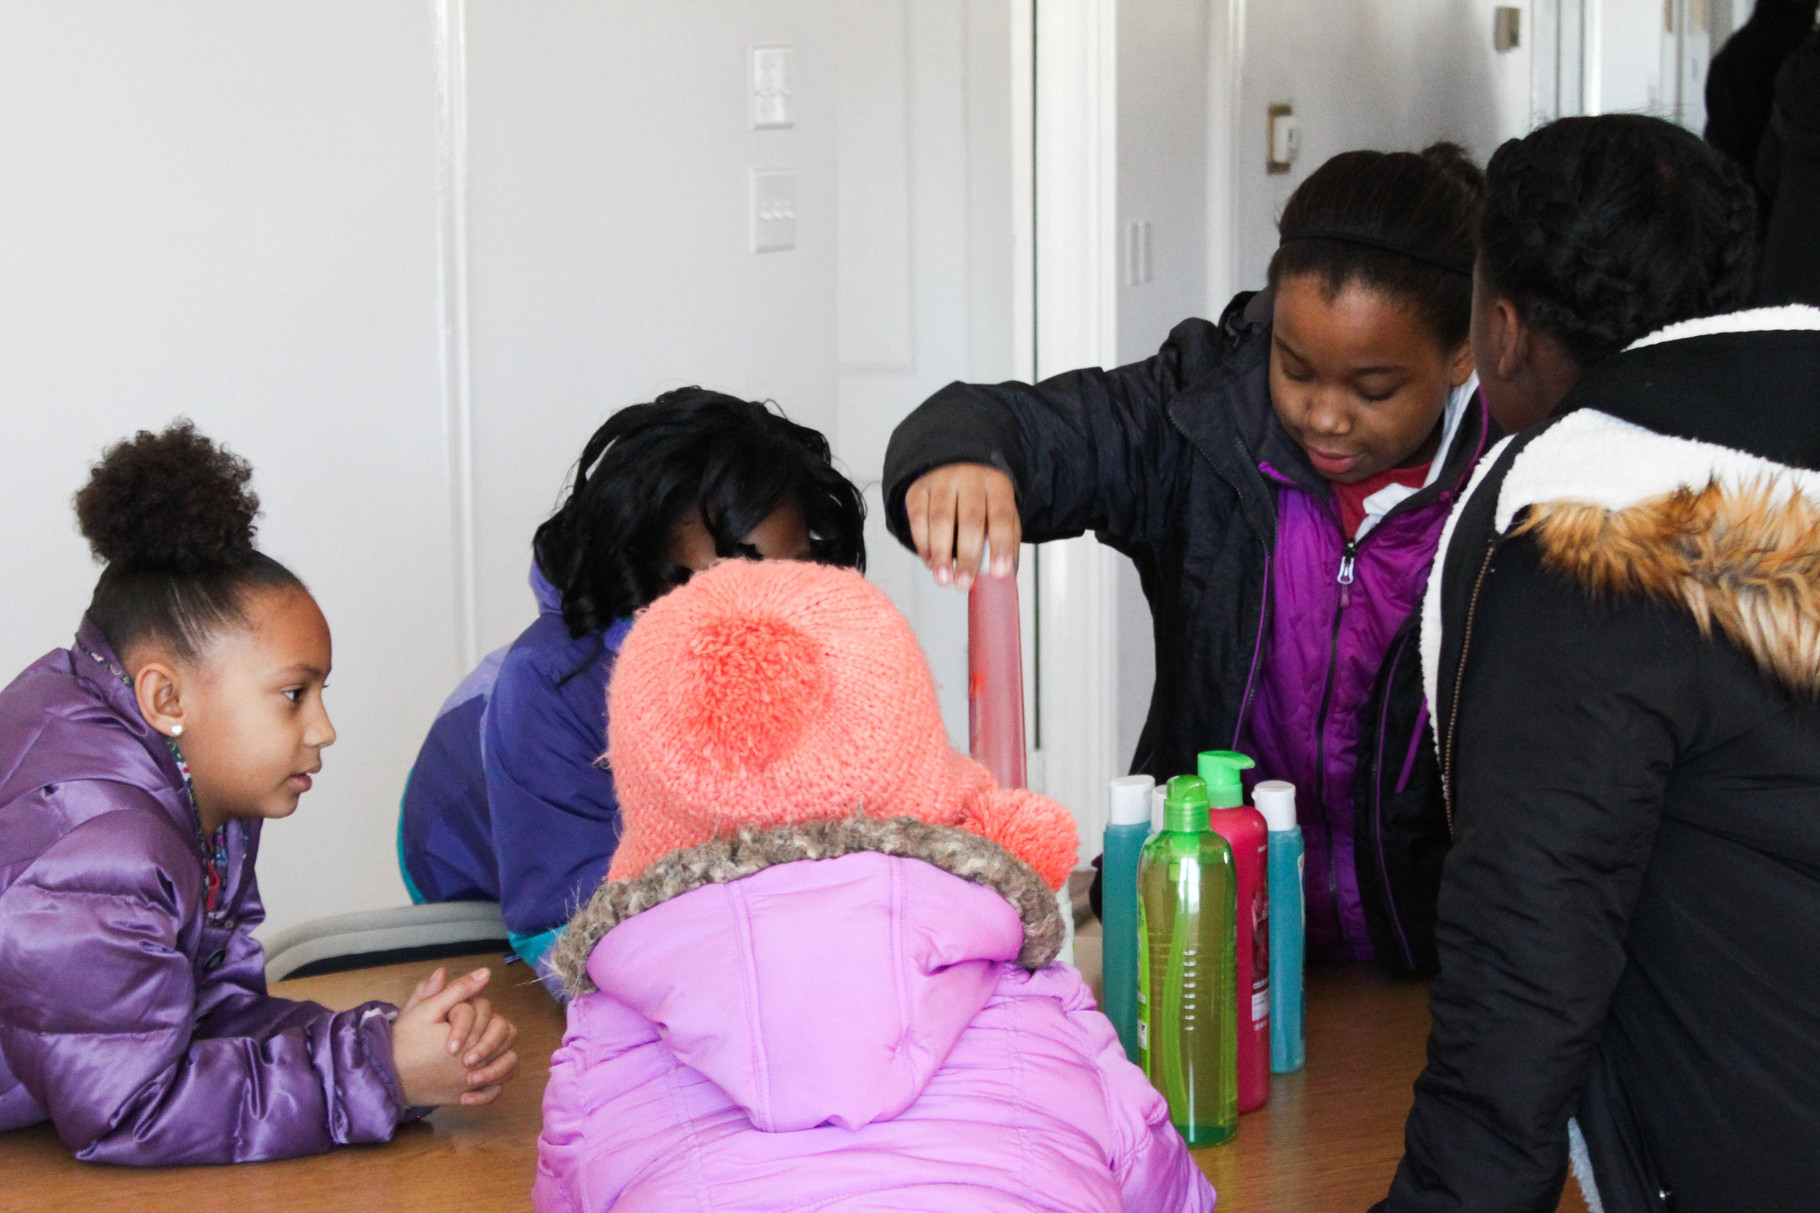 Children help sort out the items included in the health kits